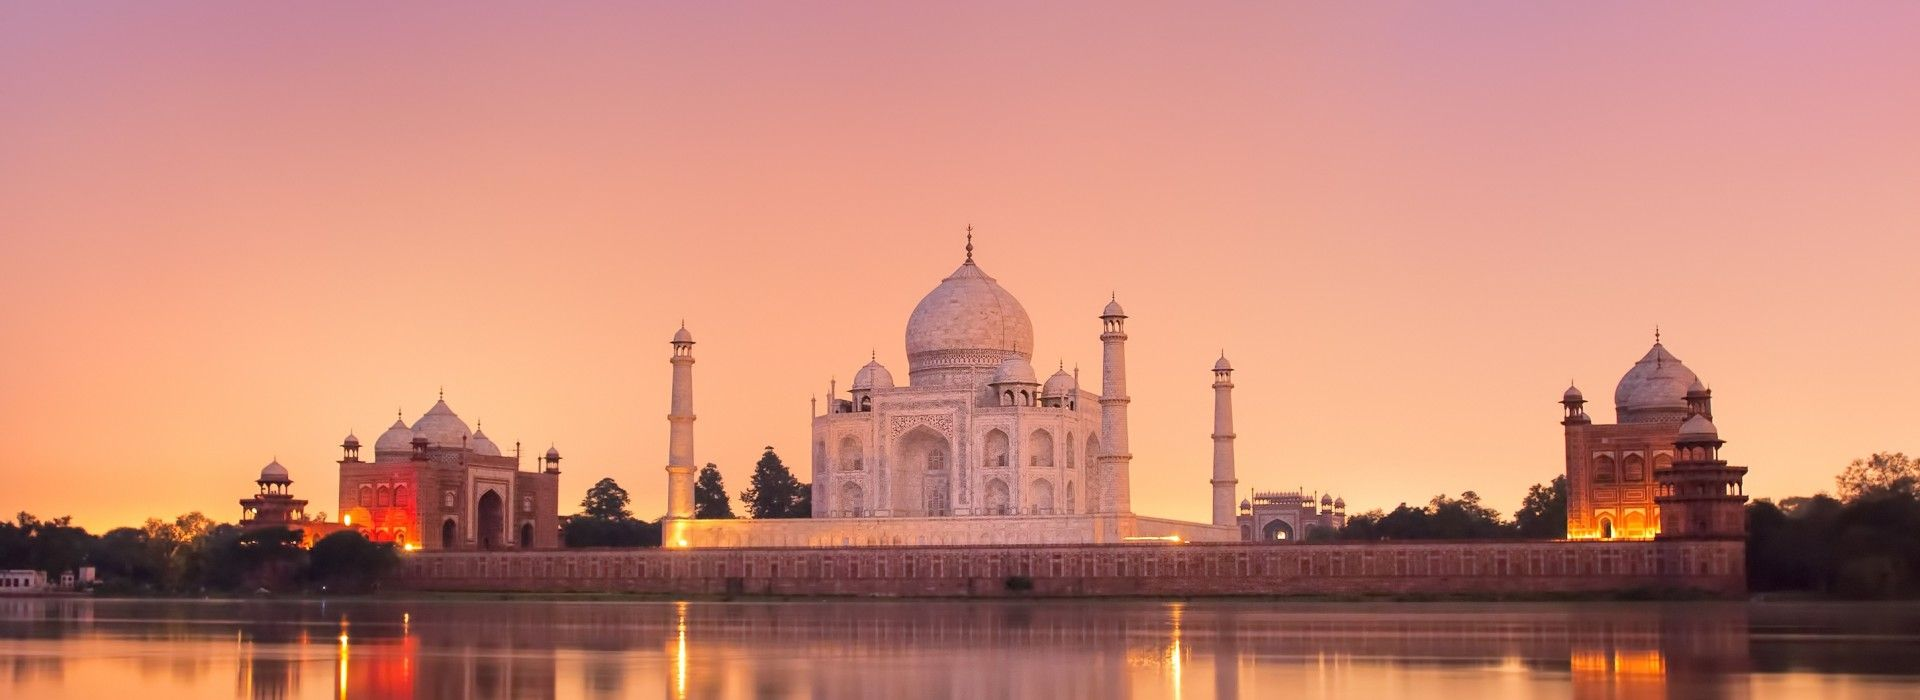 Culture shows and excursions Tours in Jaipur